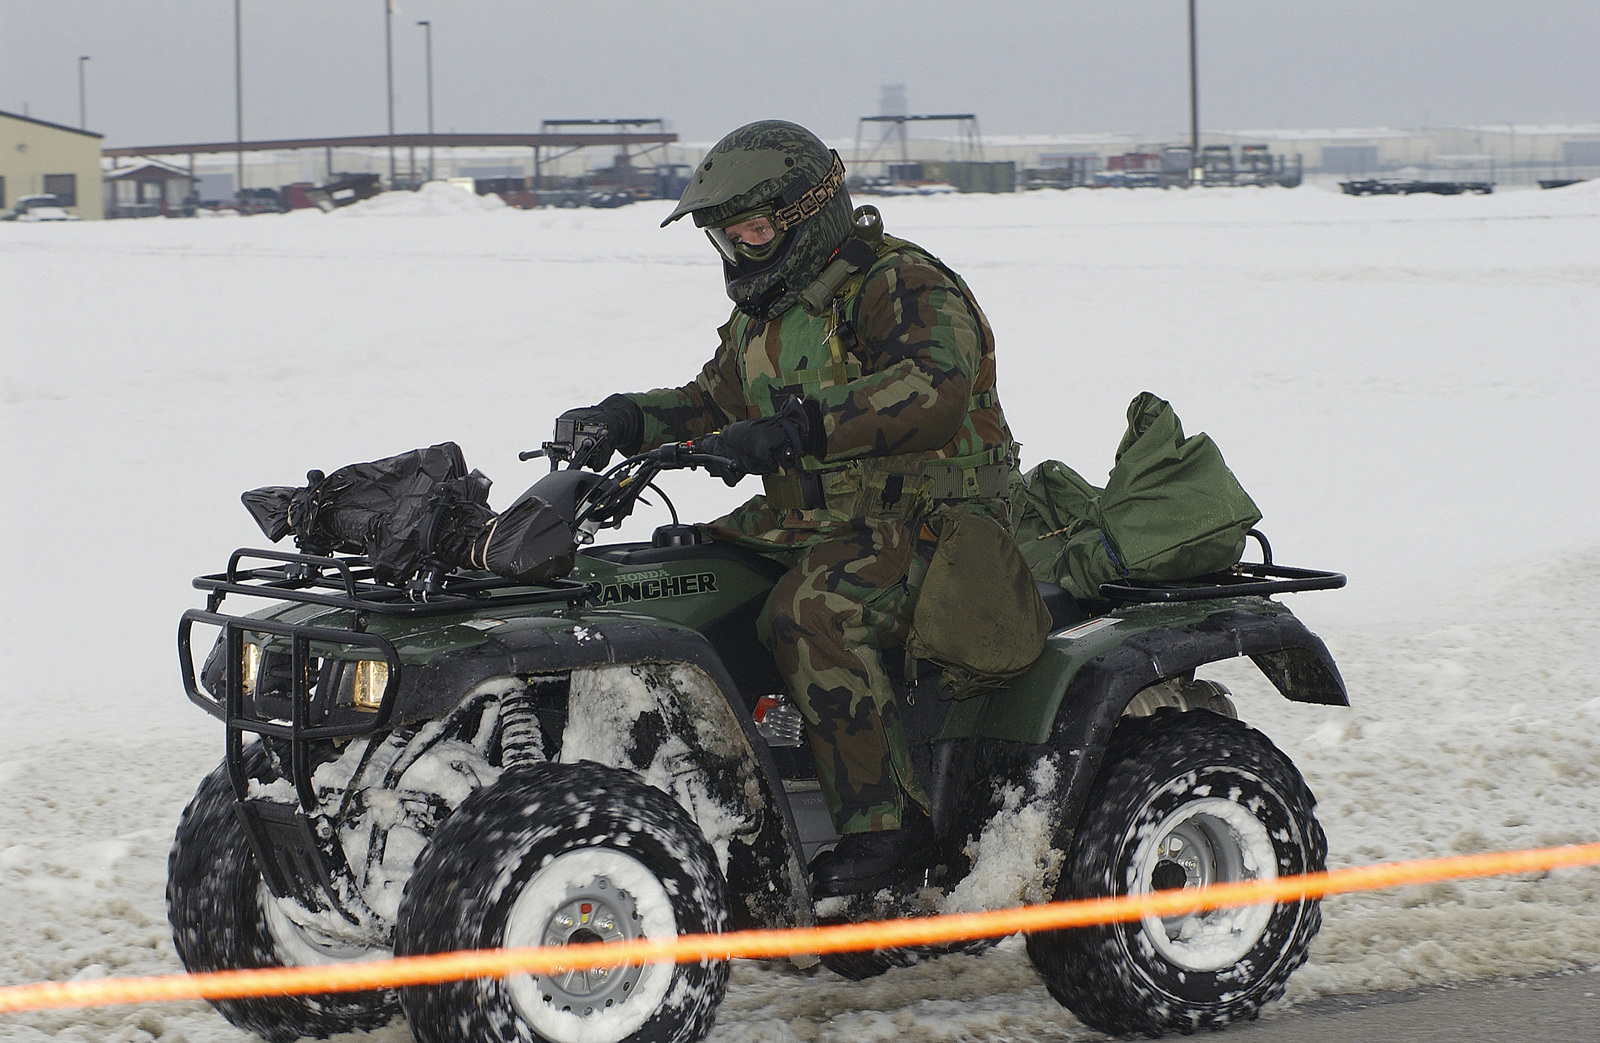 US Air Force (USAF) MASTER Sergeant (MSGT) Bart Duggan, Security Forces SPECIALIST, 509th Security Forces Squadron (SFS), patrols the outer perimeter security of the snow covered hot cargo area during a Nuclear Surety Inspection at Whiteman Air Force Base (AFB), Missouri (MO)